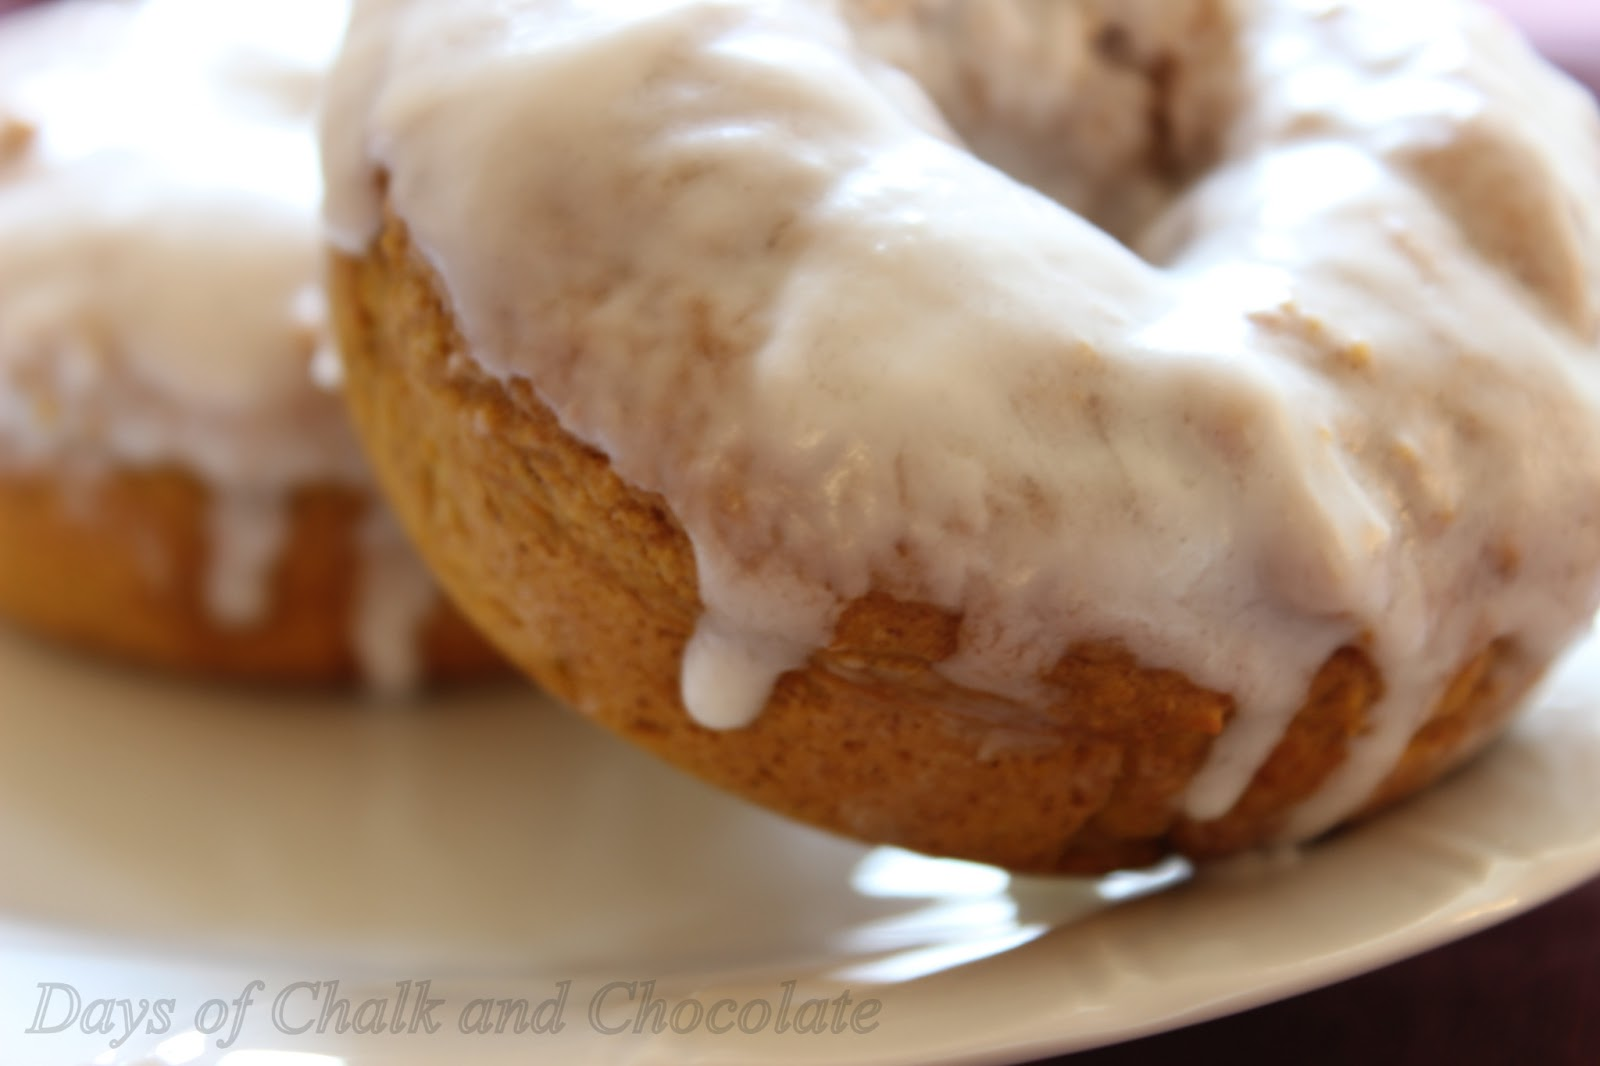 Days of Chalk and Chocolate: Baked Pumpkin Doughnuts